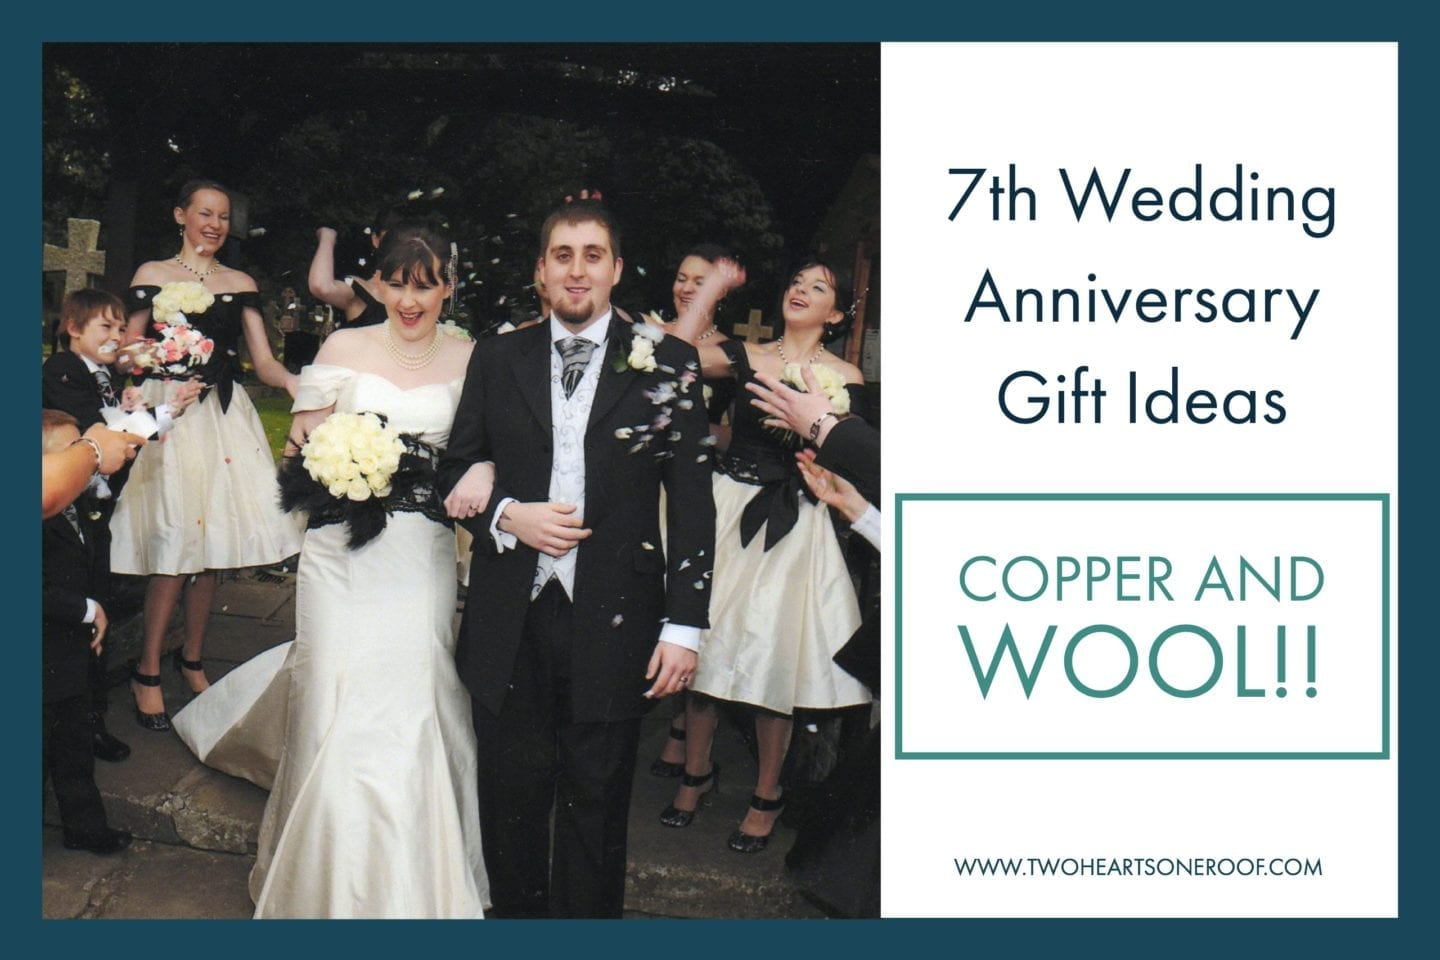 7th Wedding Anniversary Gift Ideas Wool And Copper Gift Ideas